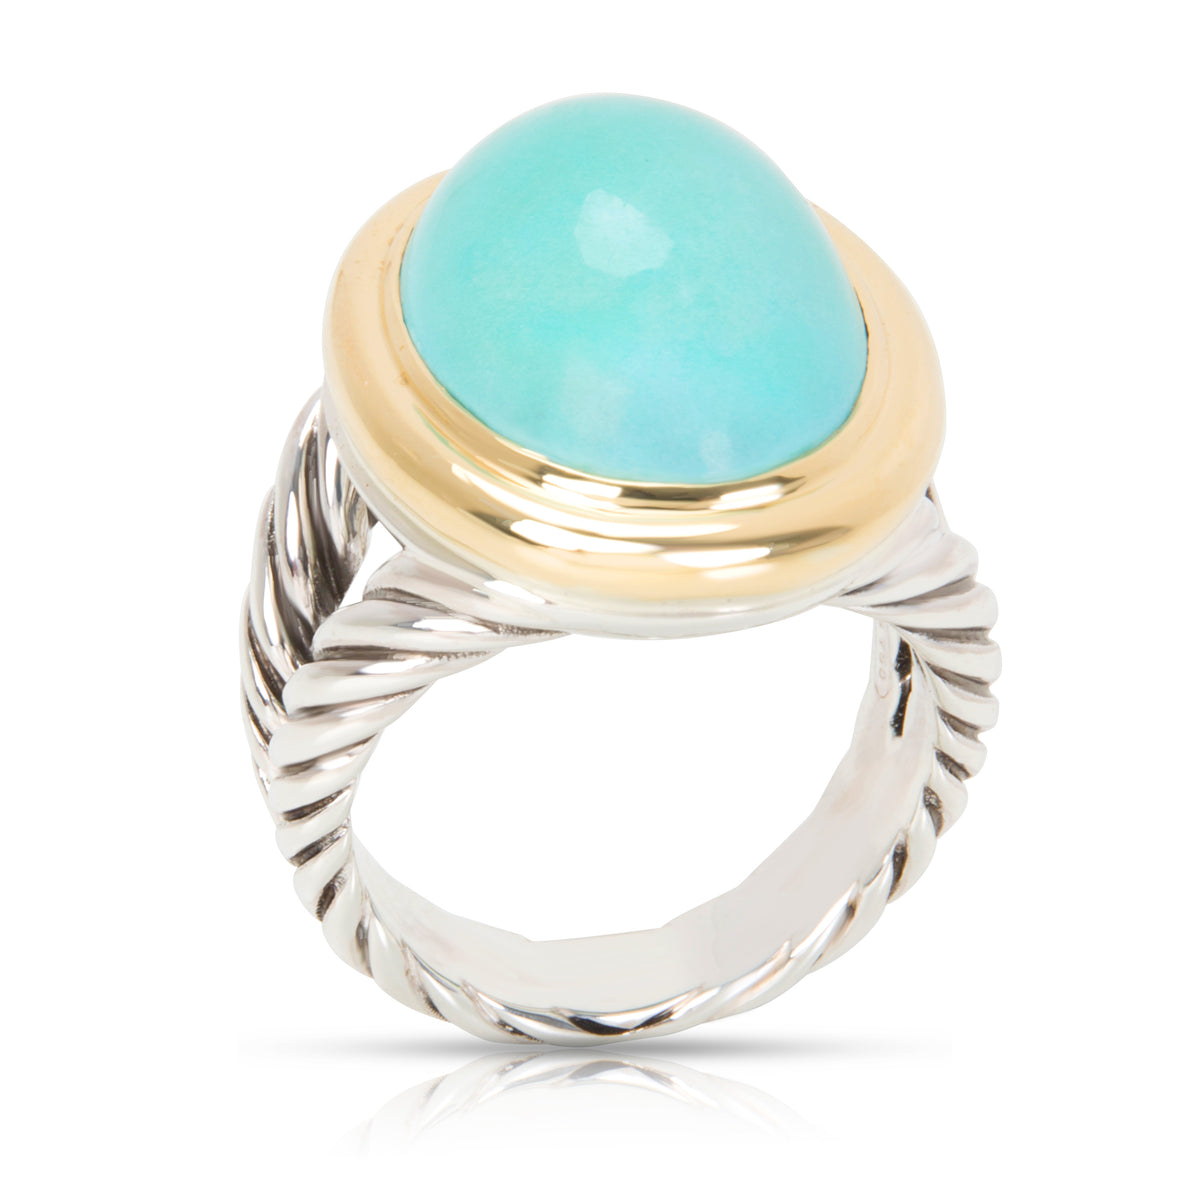 David Yurman Oval Turquoise Ring in Sterling Silver & 18K Yellow Gold